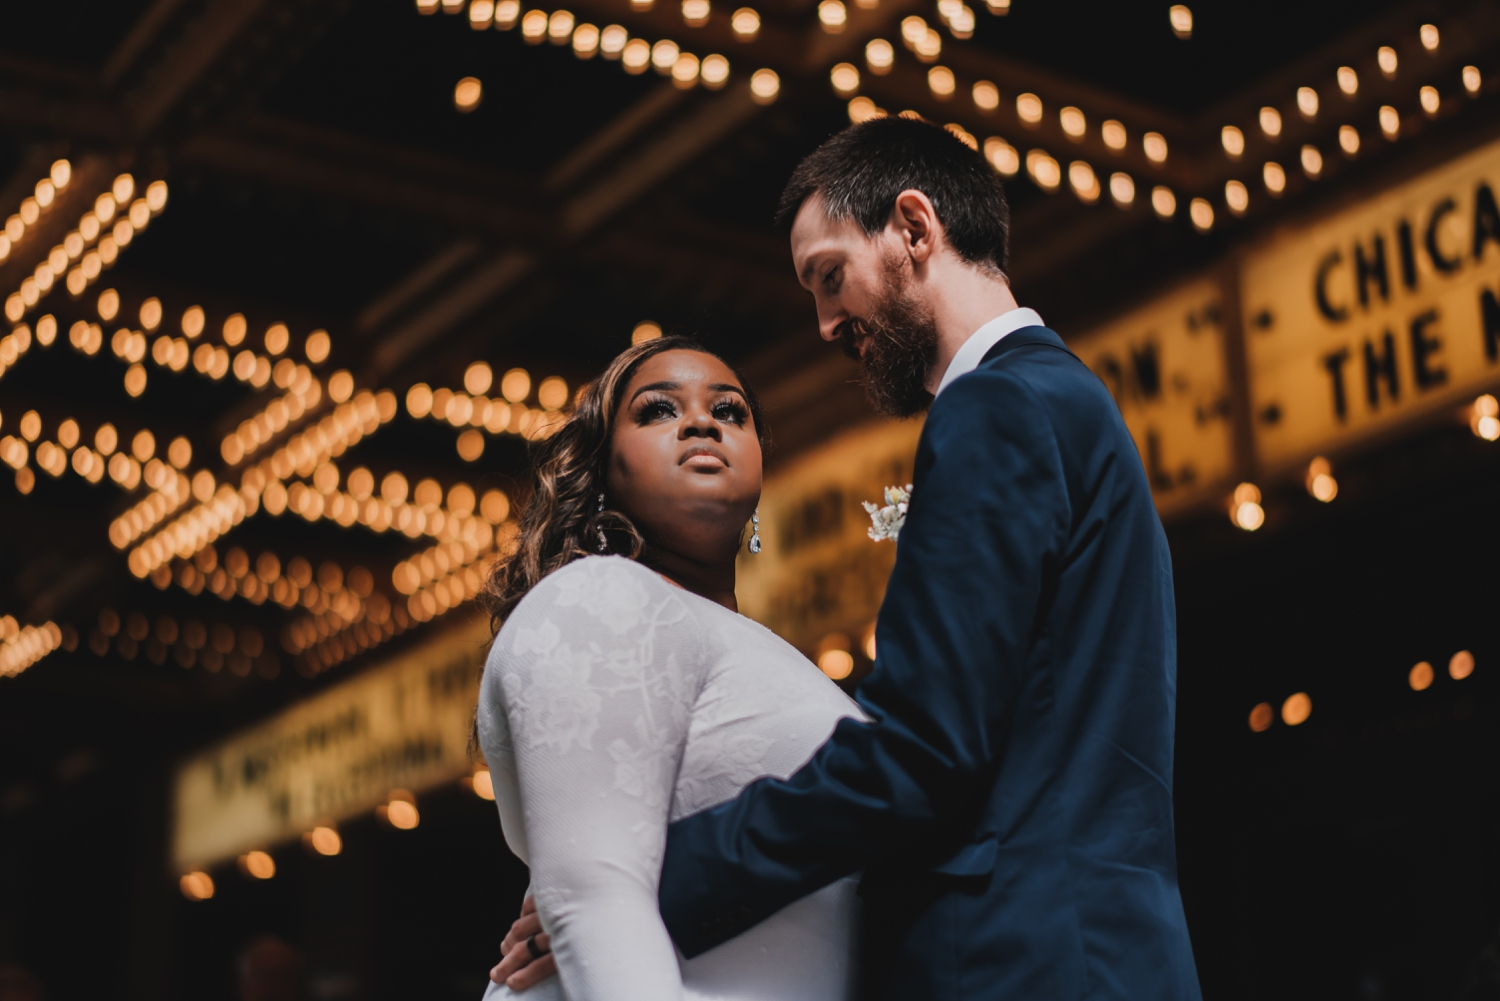 Chicago Elopement photographer - The Adamkovi, bride and groom epic portrait with light behind them